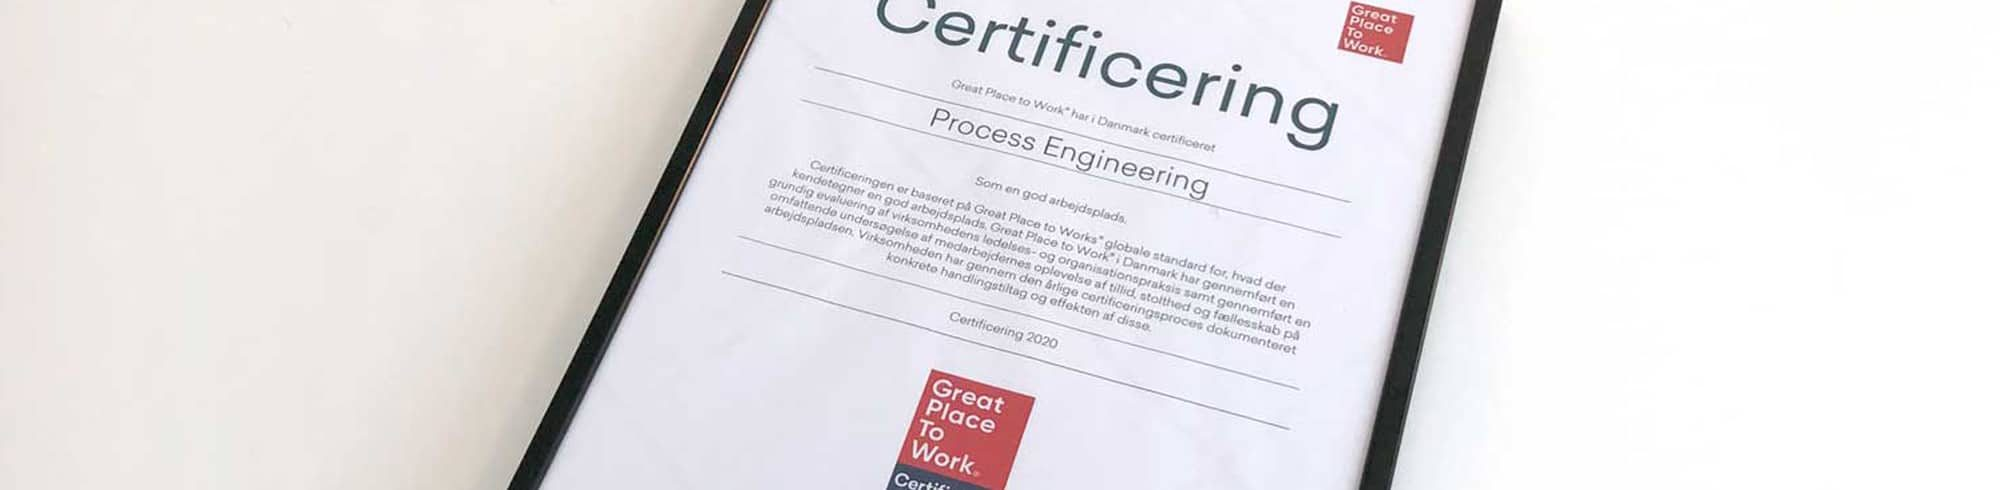 Great Place to Work®-certificeret